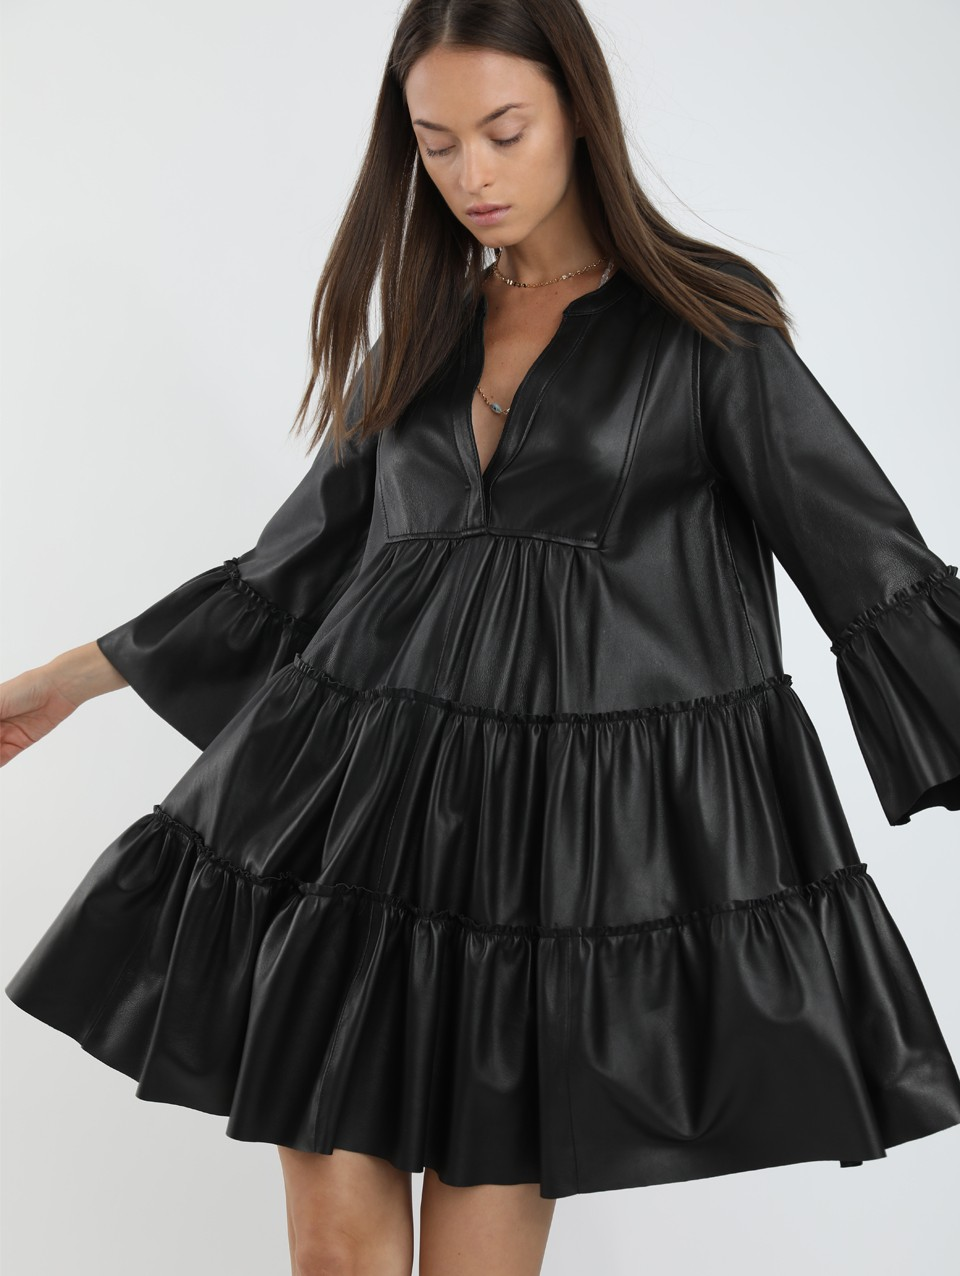 Shirin Oversize Leather Frilled Dress